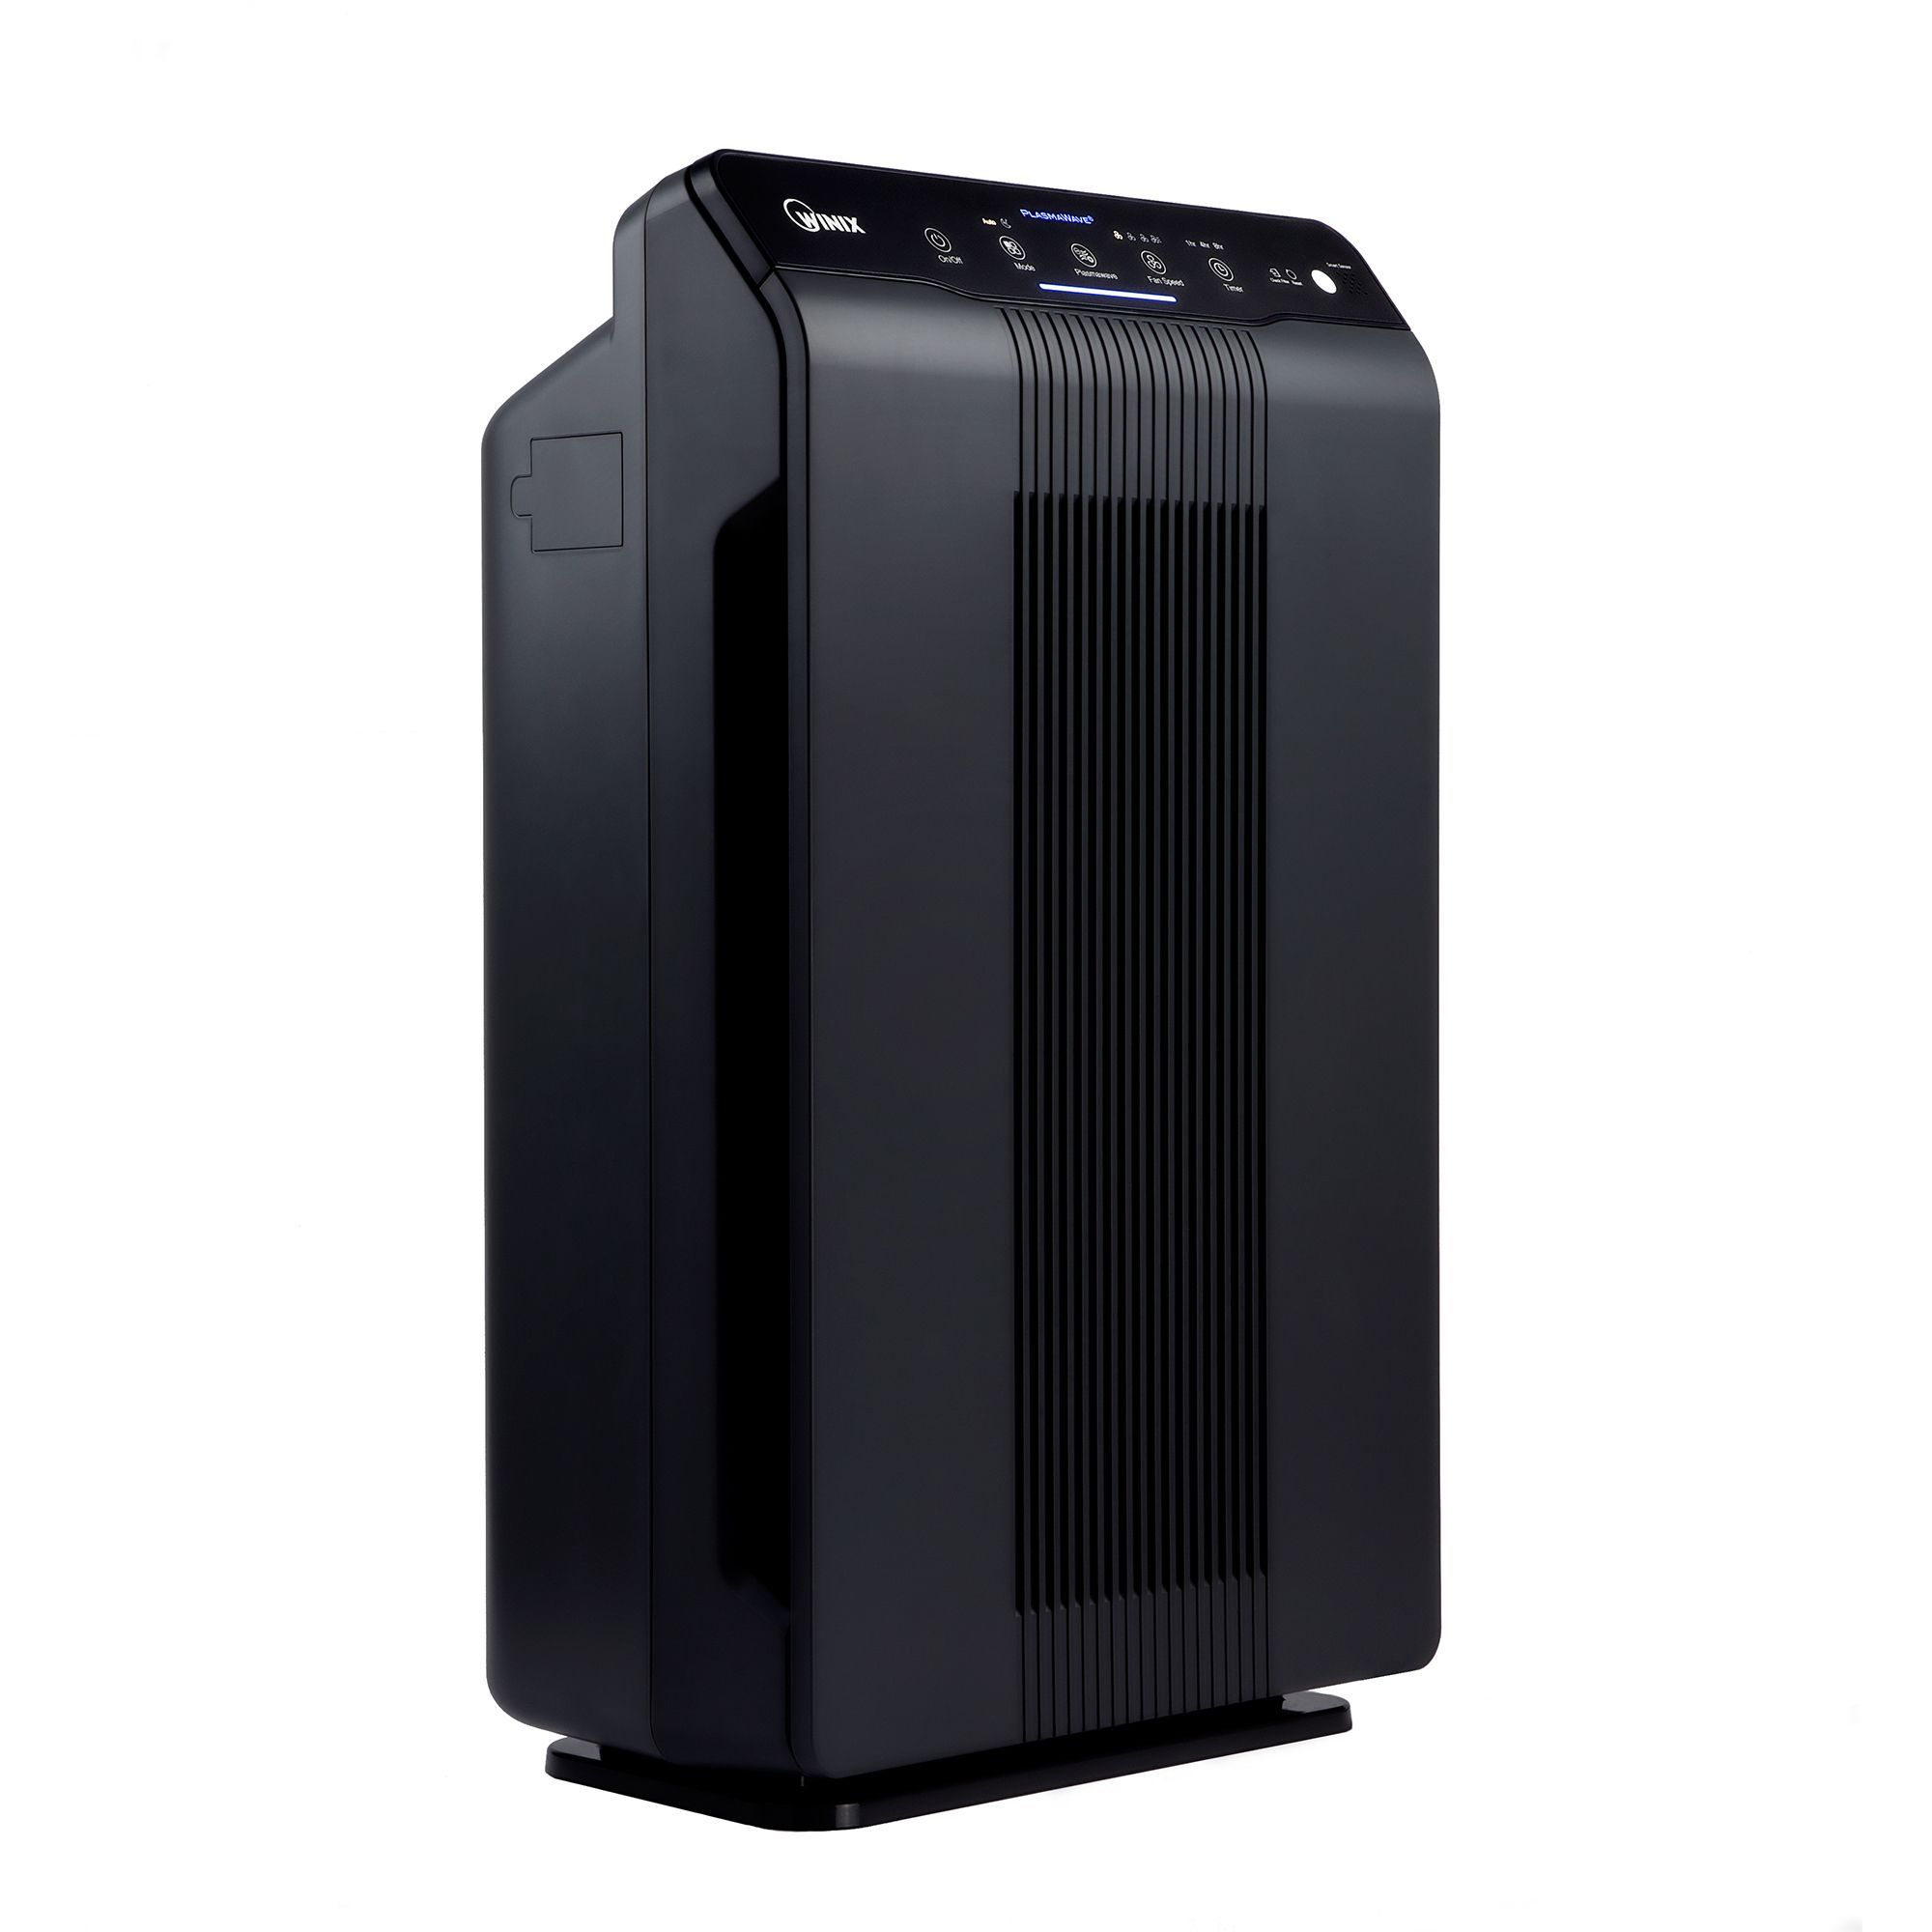 Winix 55002 True HEPA Air Purifier with PlasmaWave